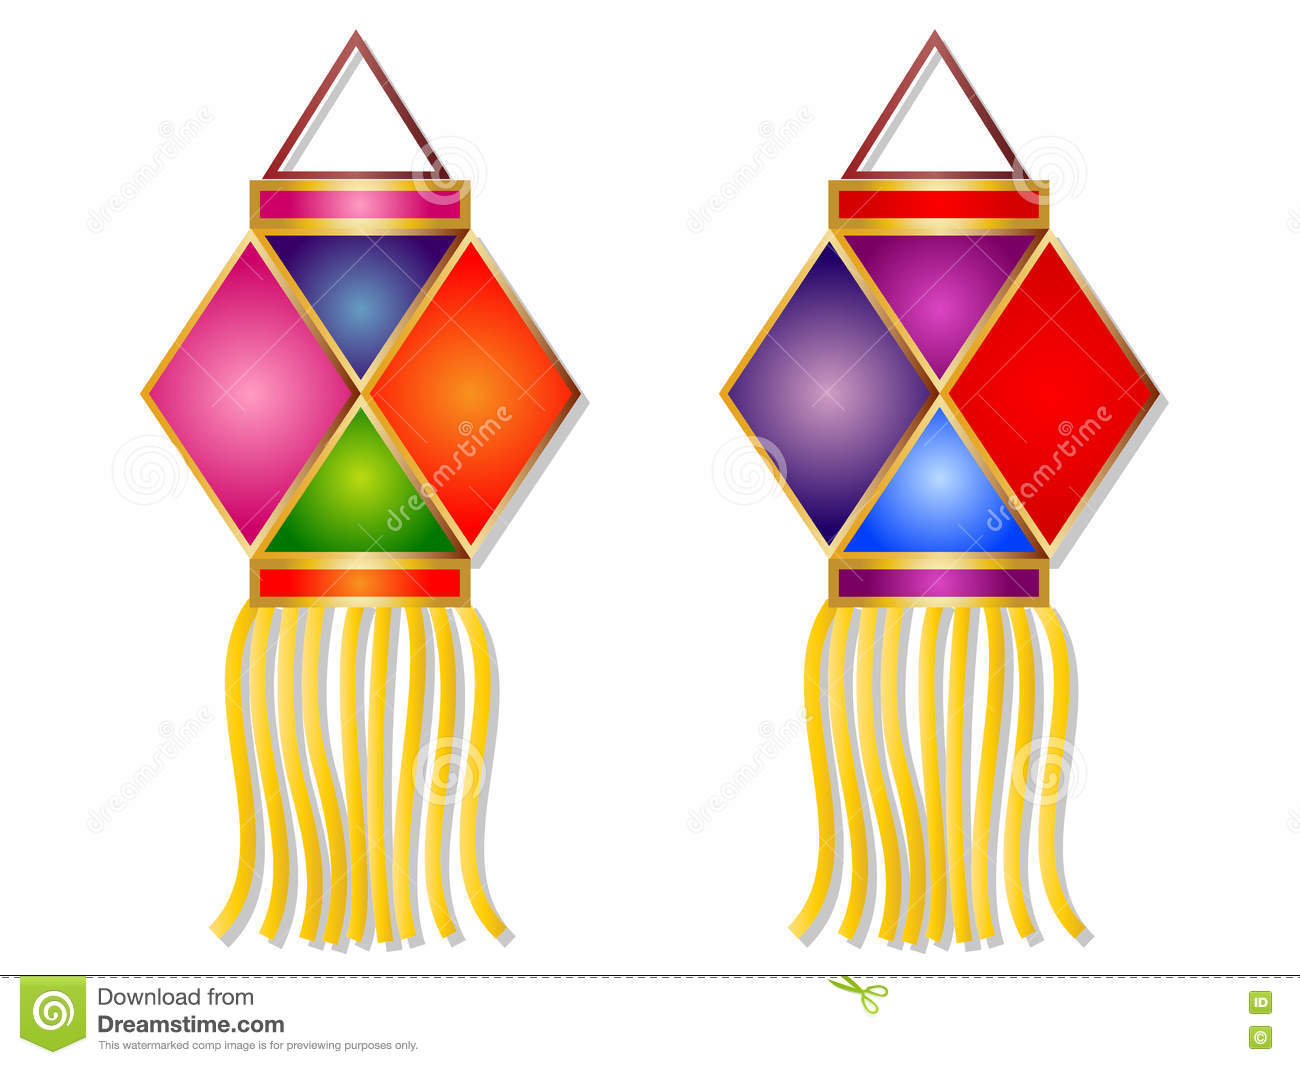 Cartoon lanterns clipart.